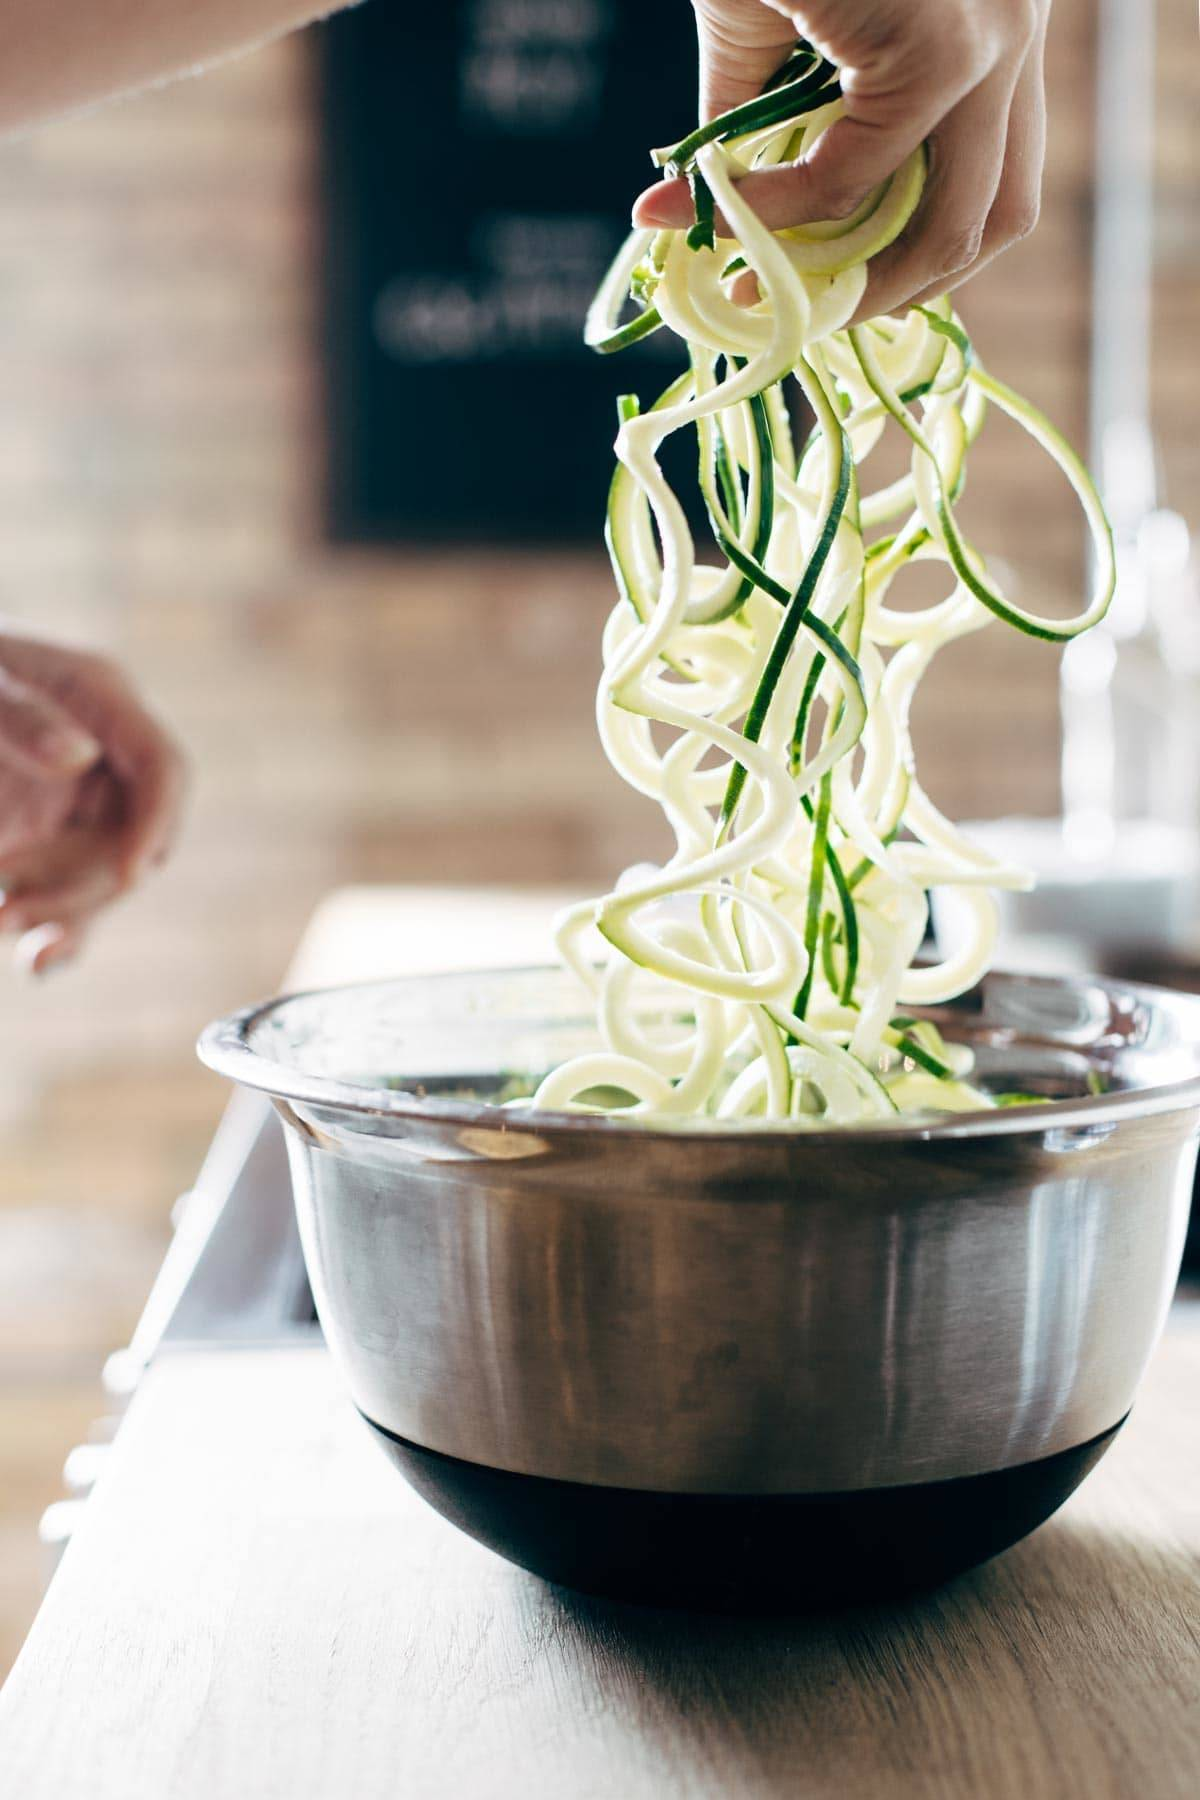 Zoodles in a bowl.